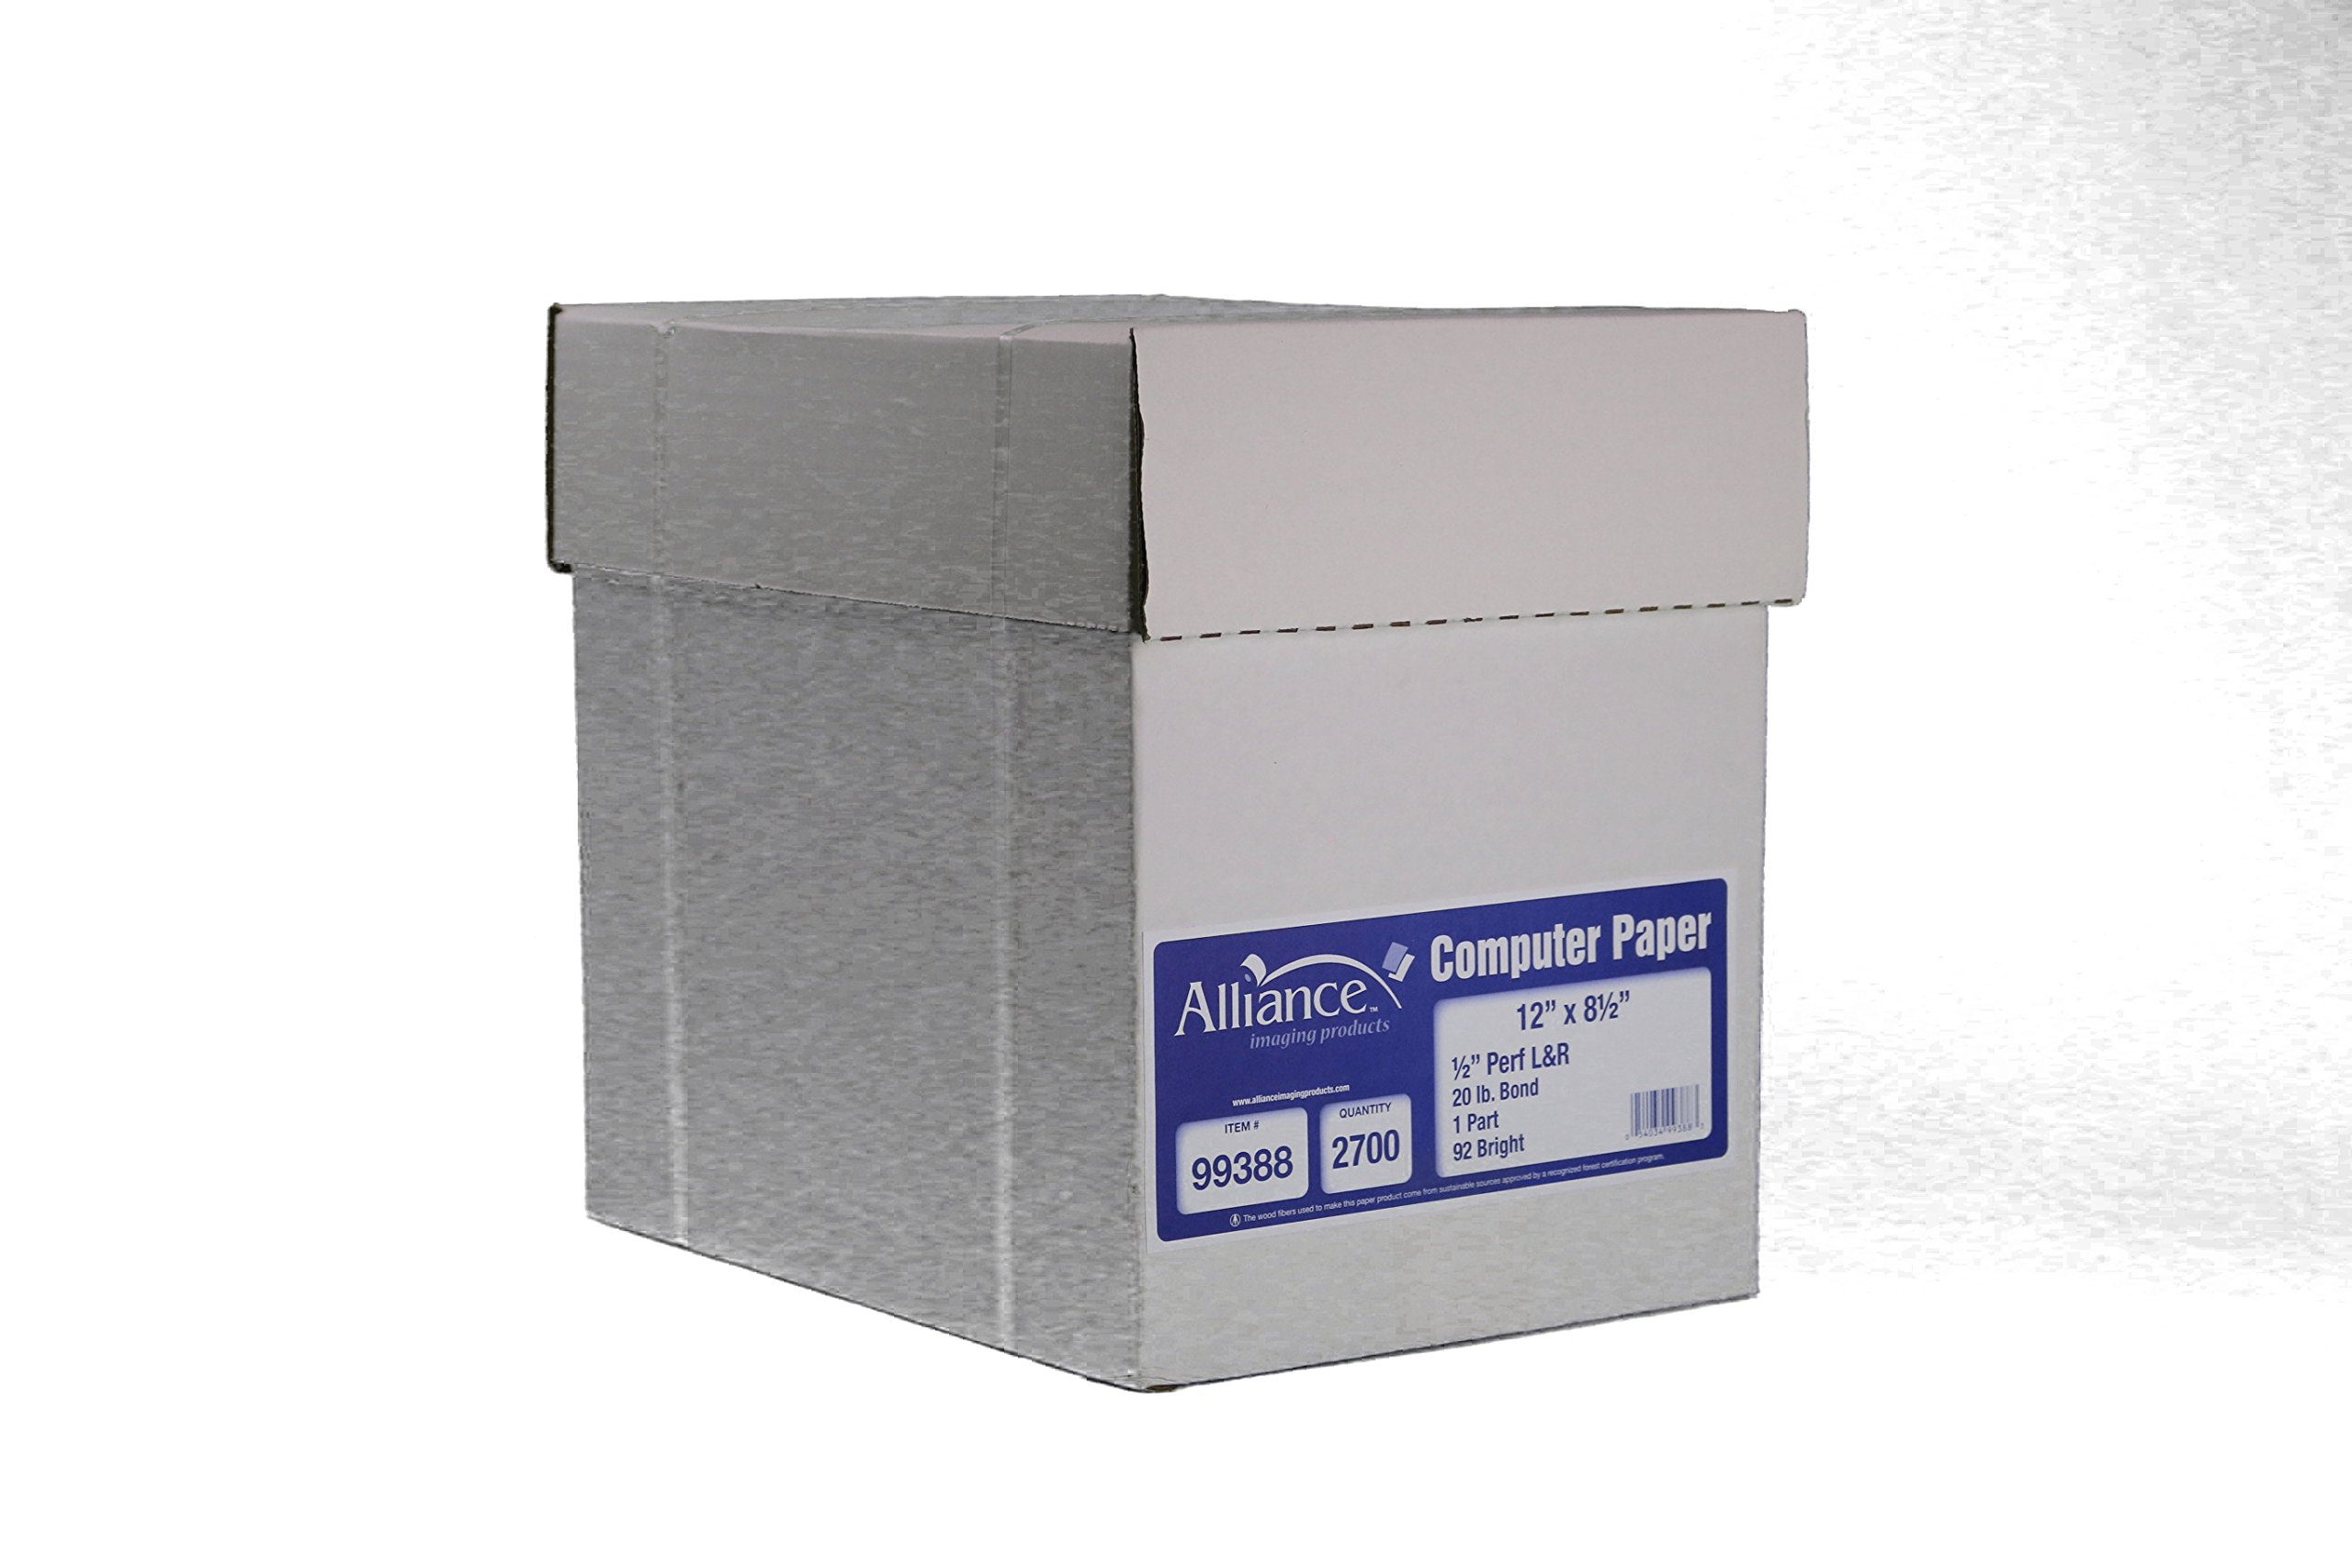 Alliance Continuous Computer Paper 12'' x 8-1/2'' Blank Left & Right Perforated 1-Part 92 Bright 20lb 2700 Sheets per Carton by Alliance (Image #3)